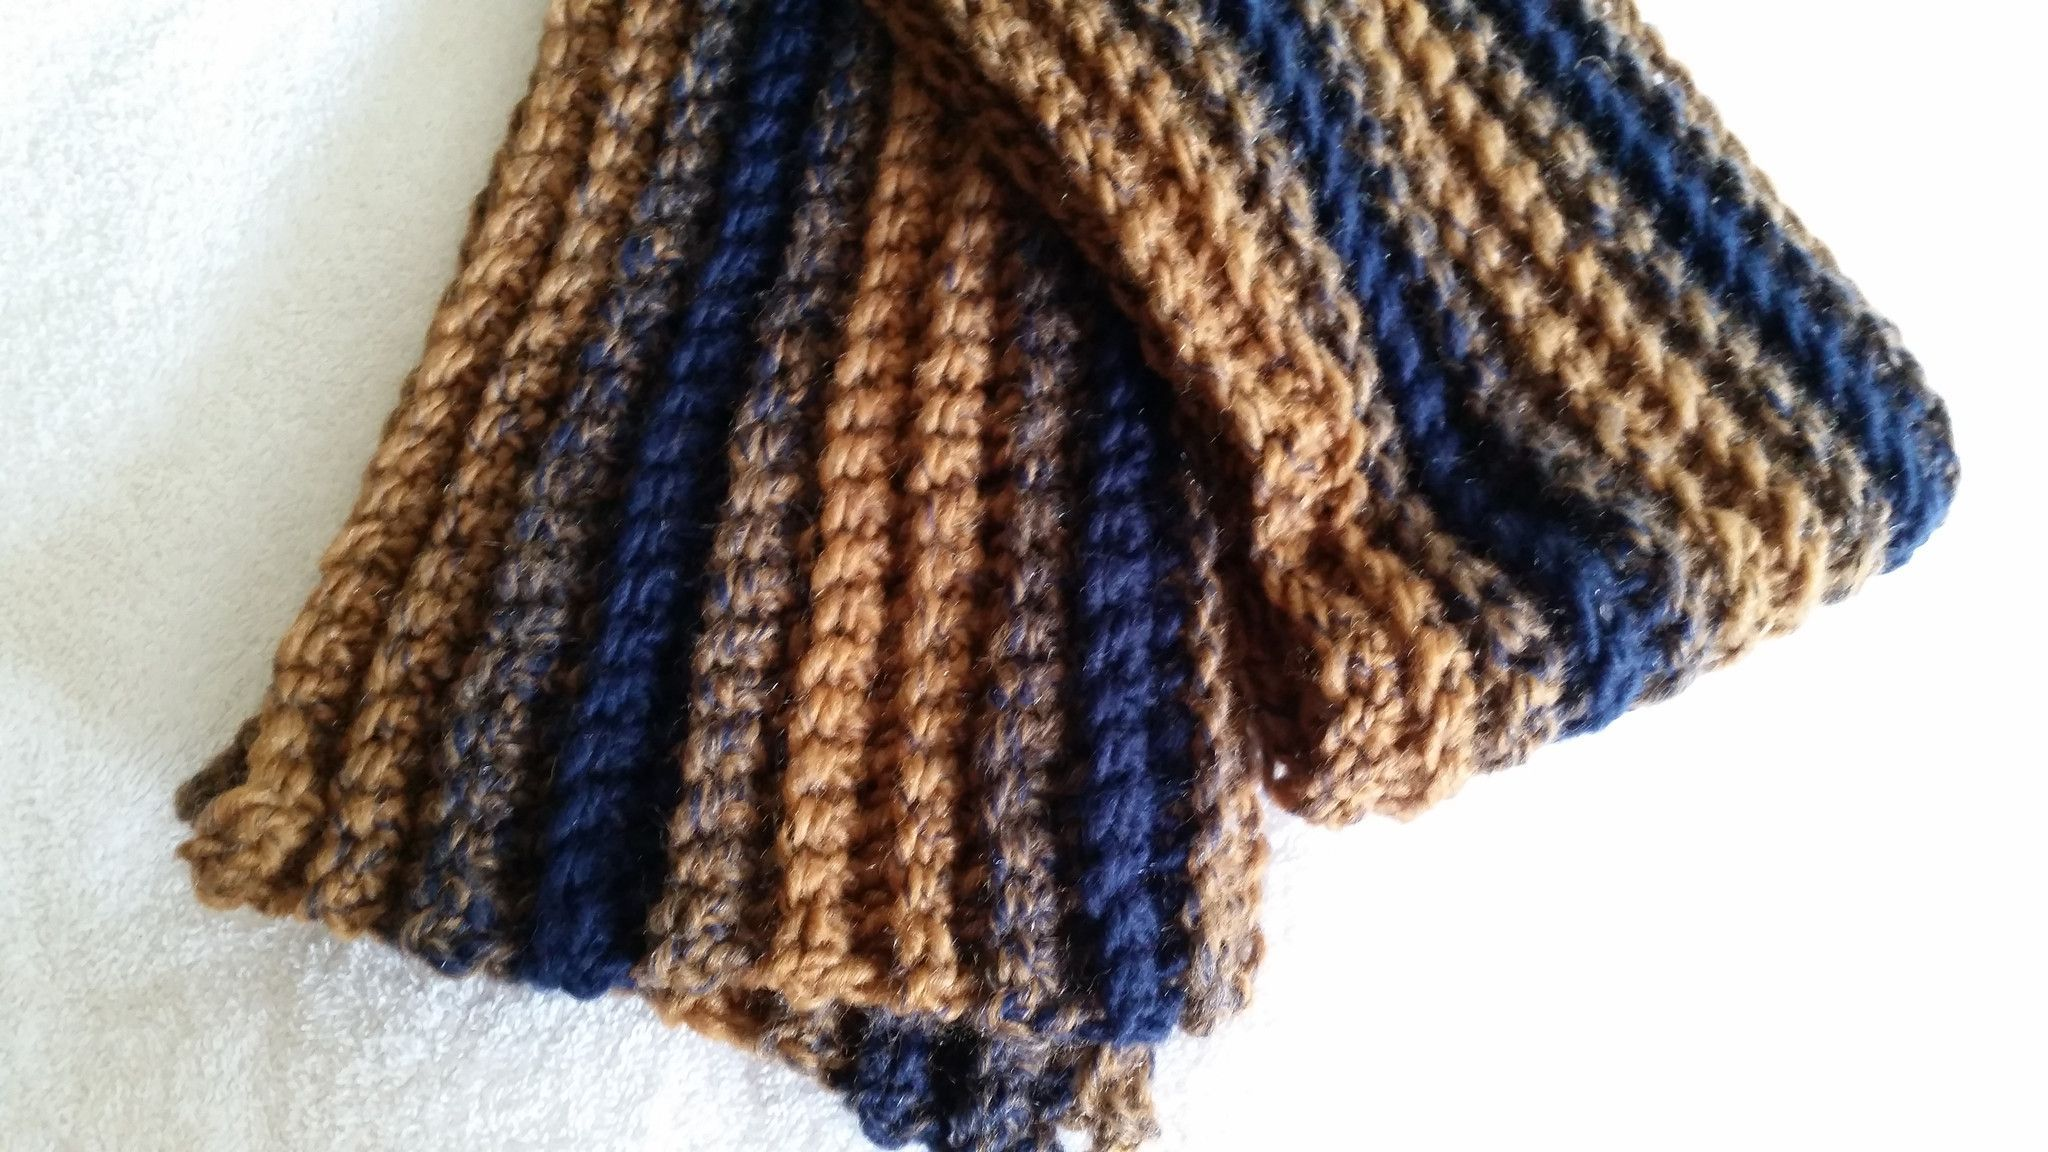 https://www.etsy.com/listing/247804228/scarf-neckwarmer-crocheted-brown-blue?ref=shop_home_active_1